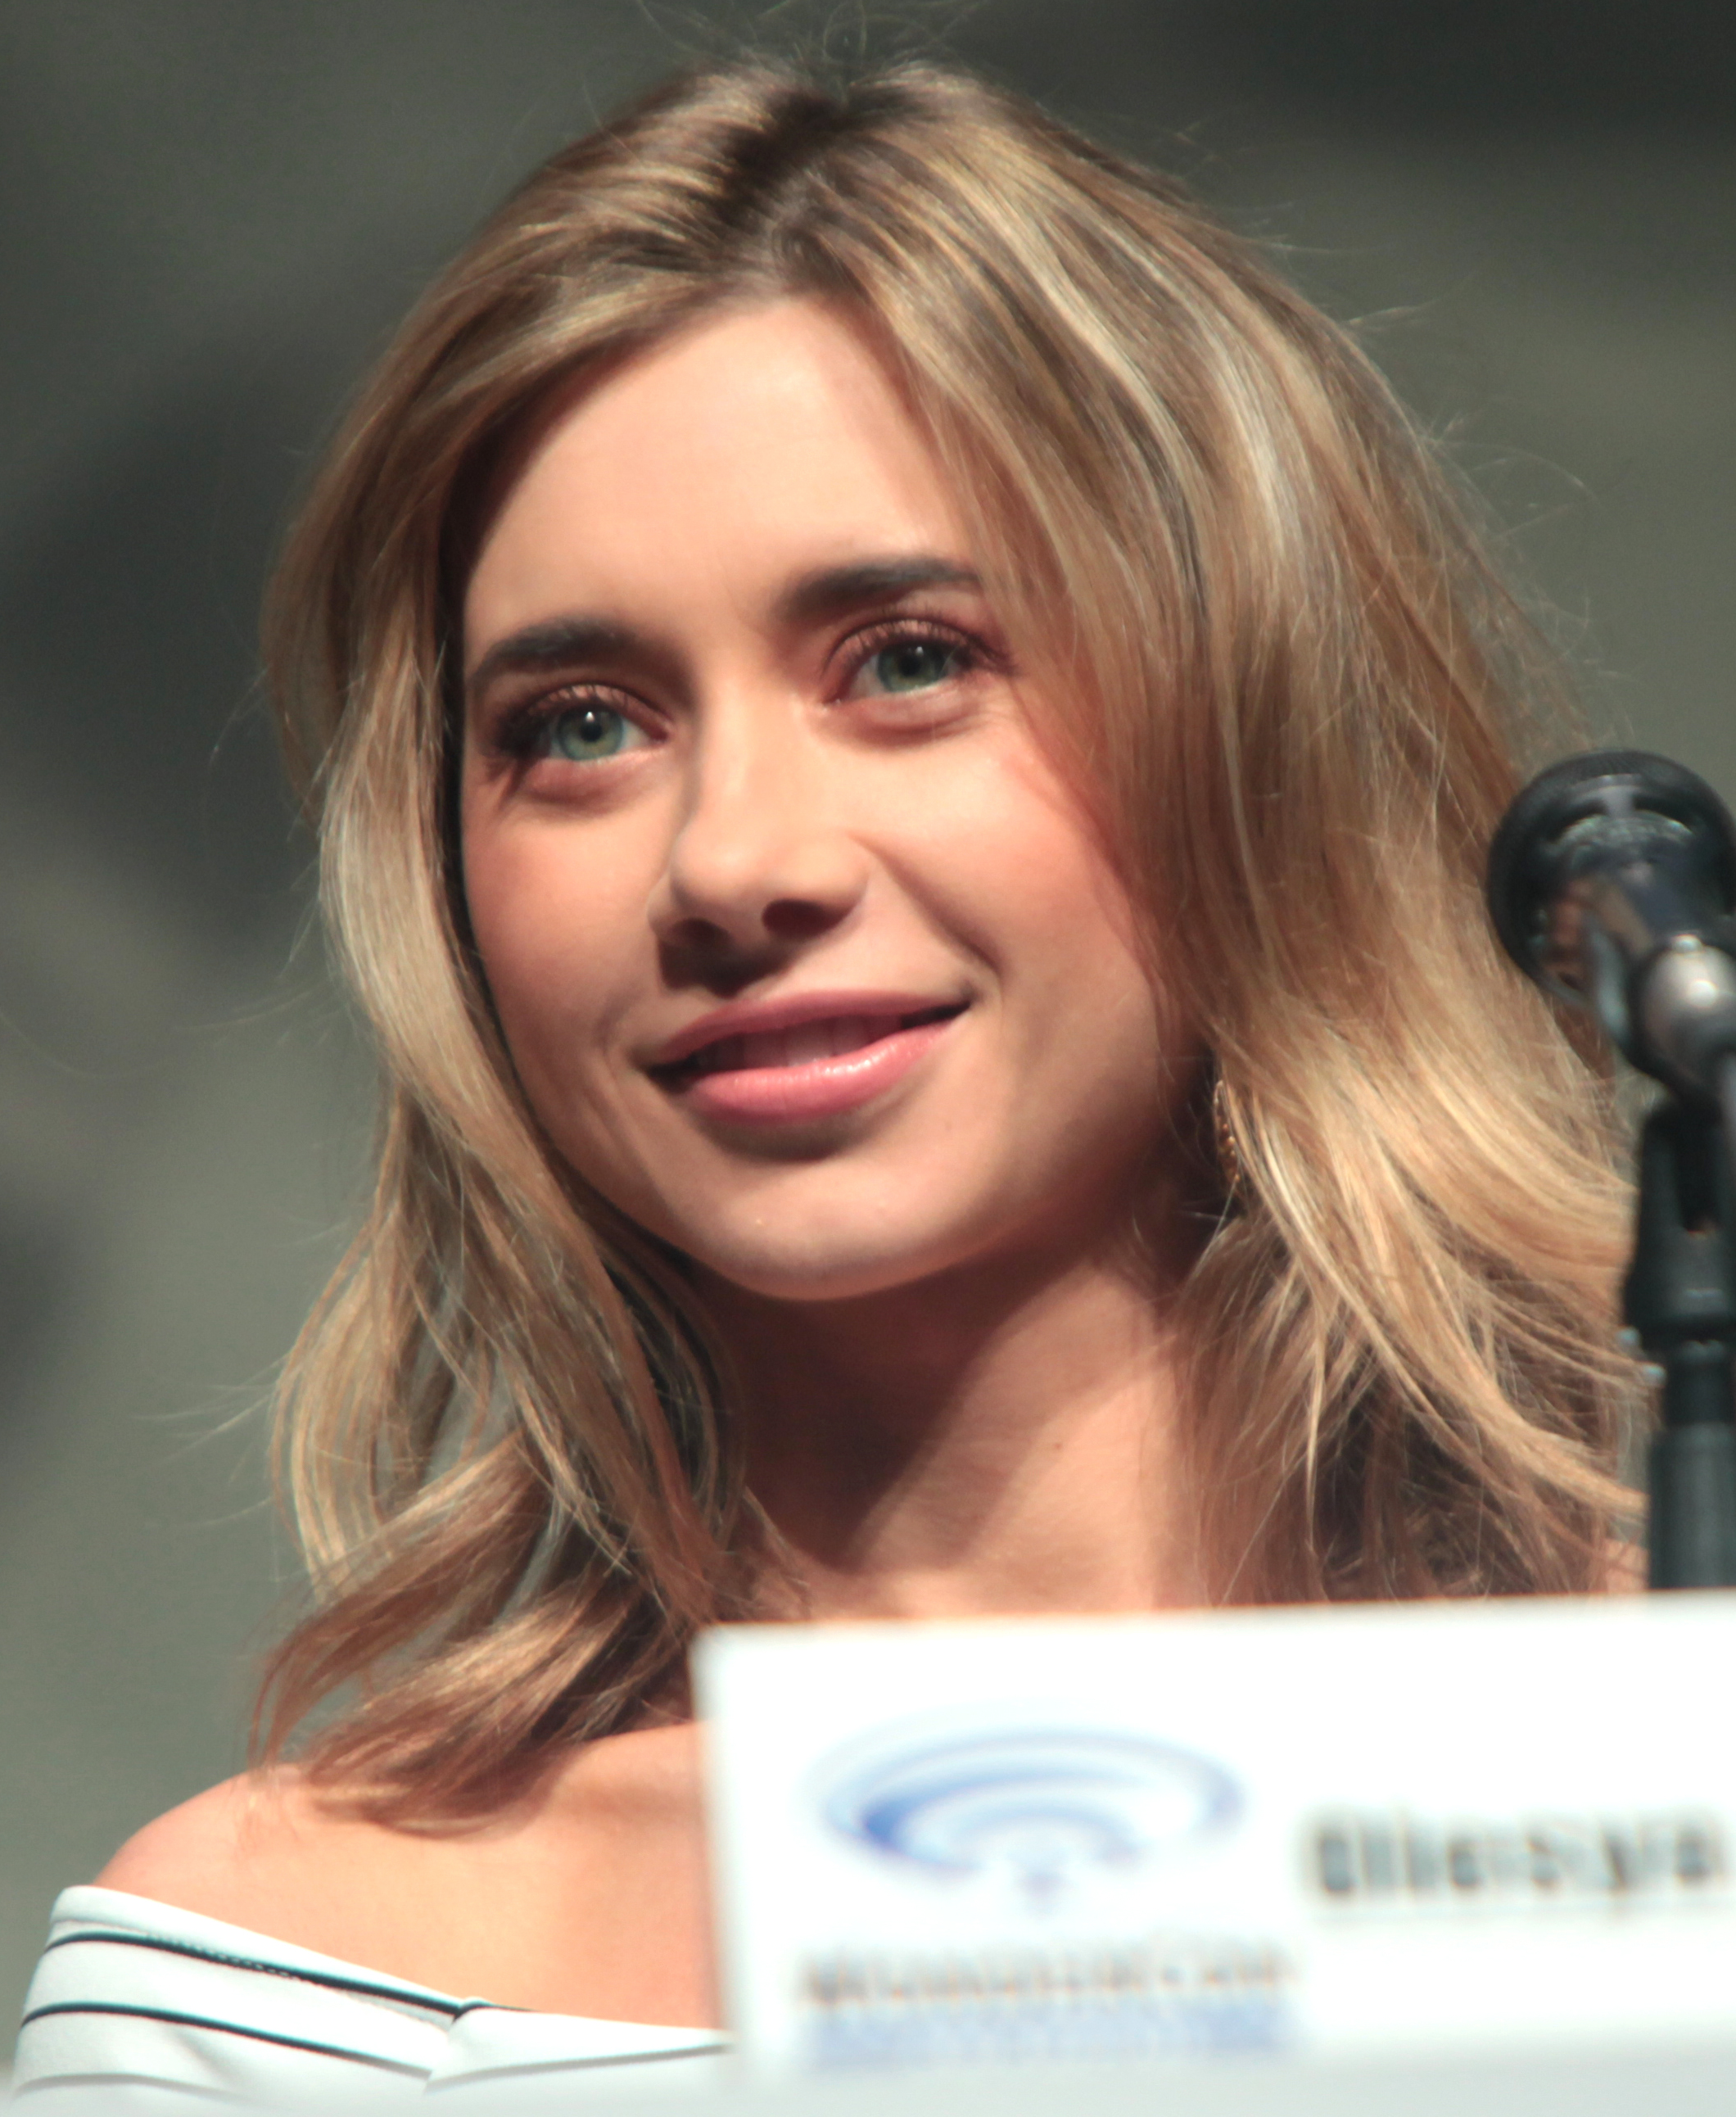 The 32-year old daughter of father (?) and mother(?) Olesya Rulin in 2018 photo. Olesya Rulin earned a  million dollar salary - leaving the net worth at 1 million in 2018